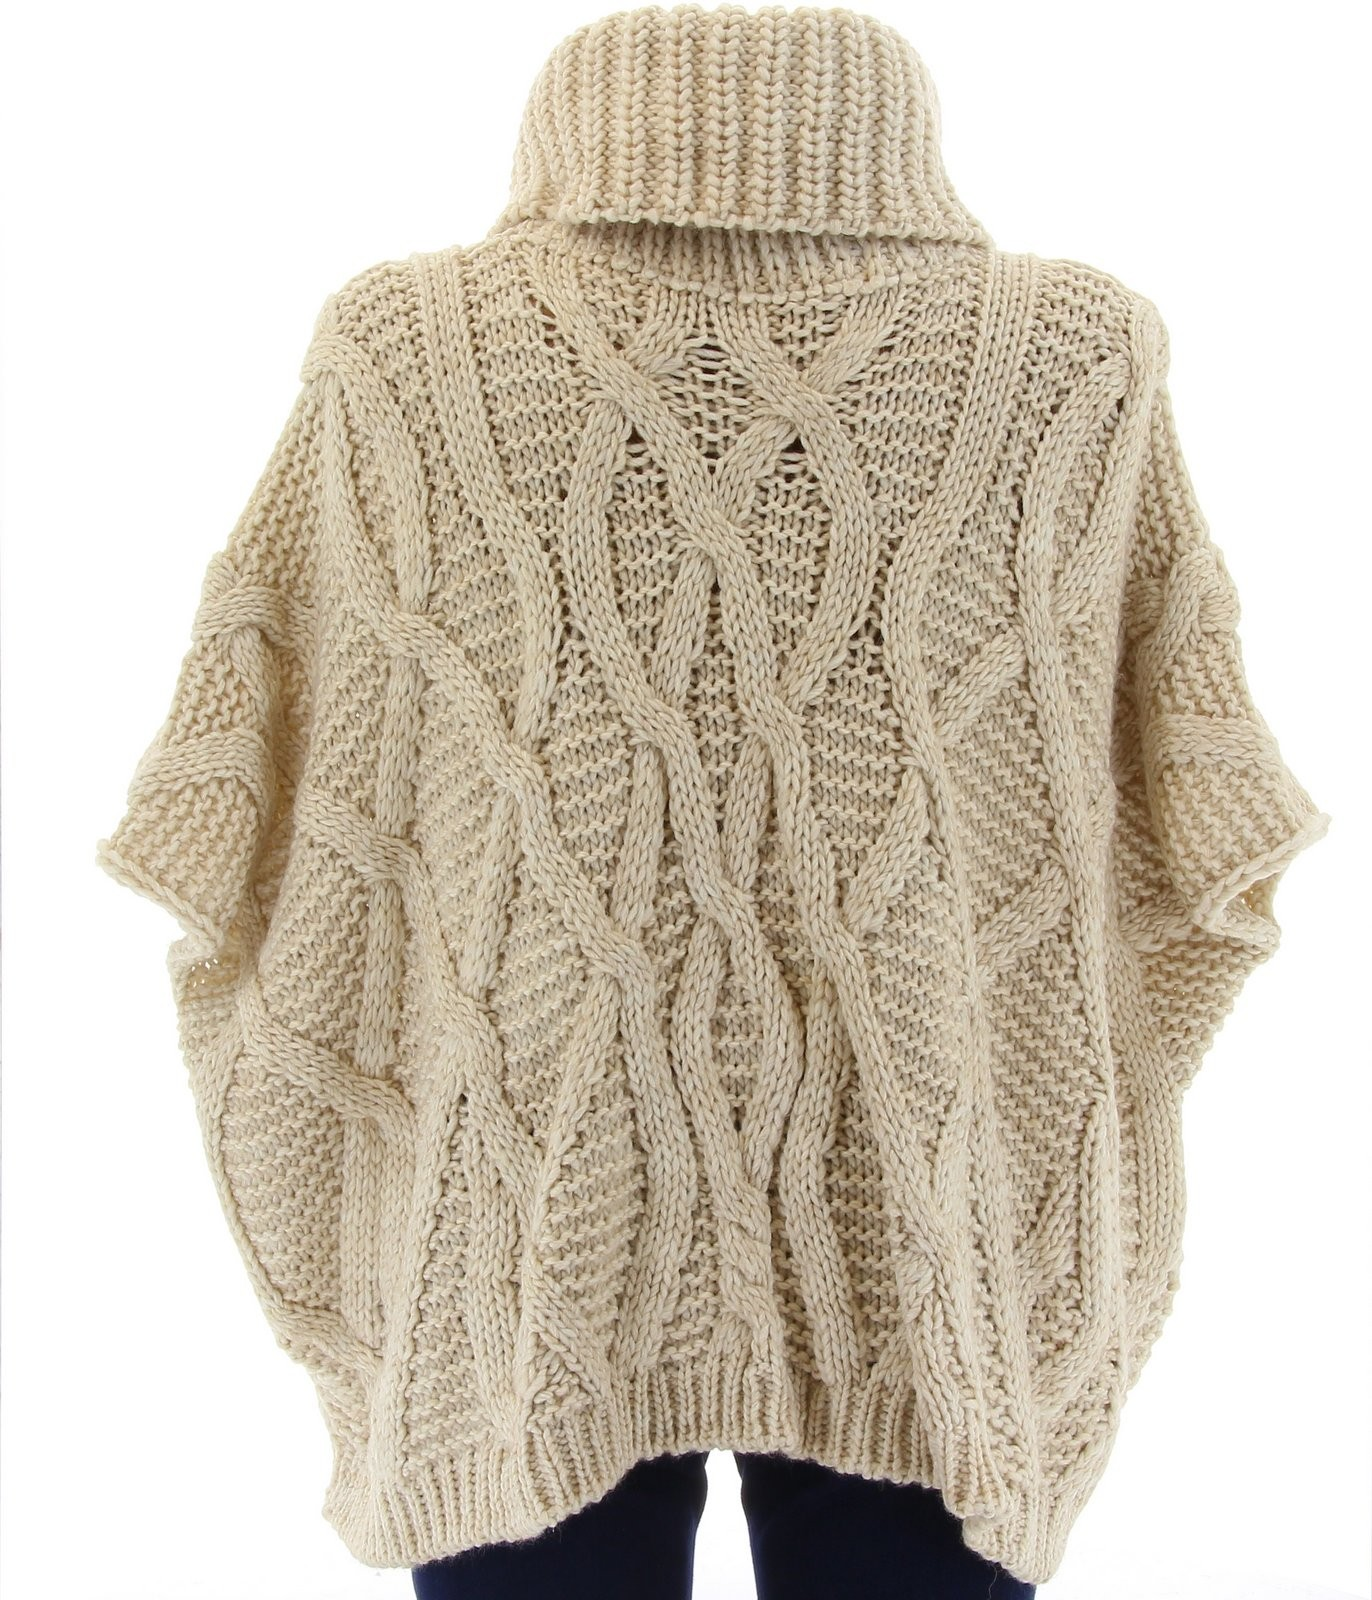 Pull poncho laine mohair grosse maille hiver beige sorenza beige ebay - Laine grosse maille ...